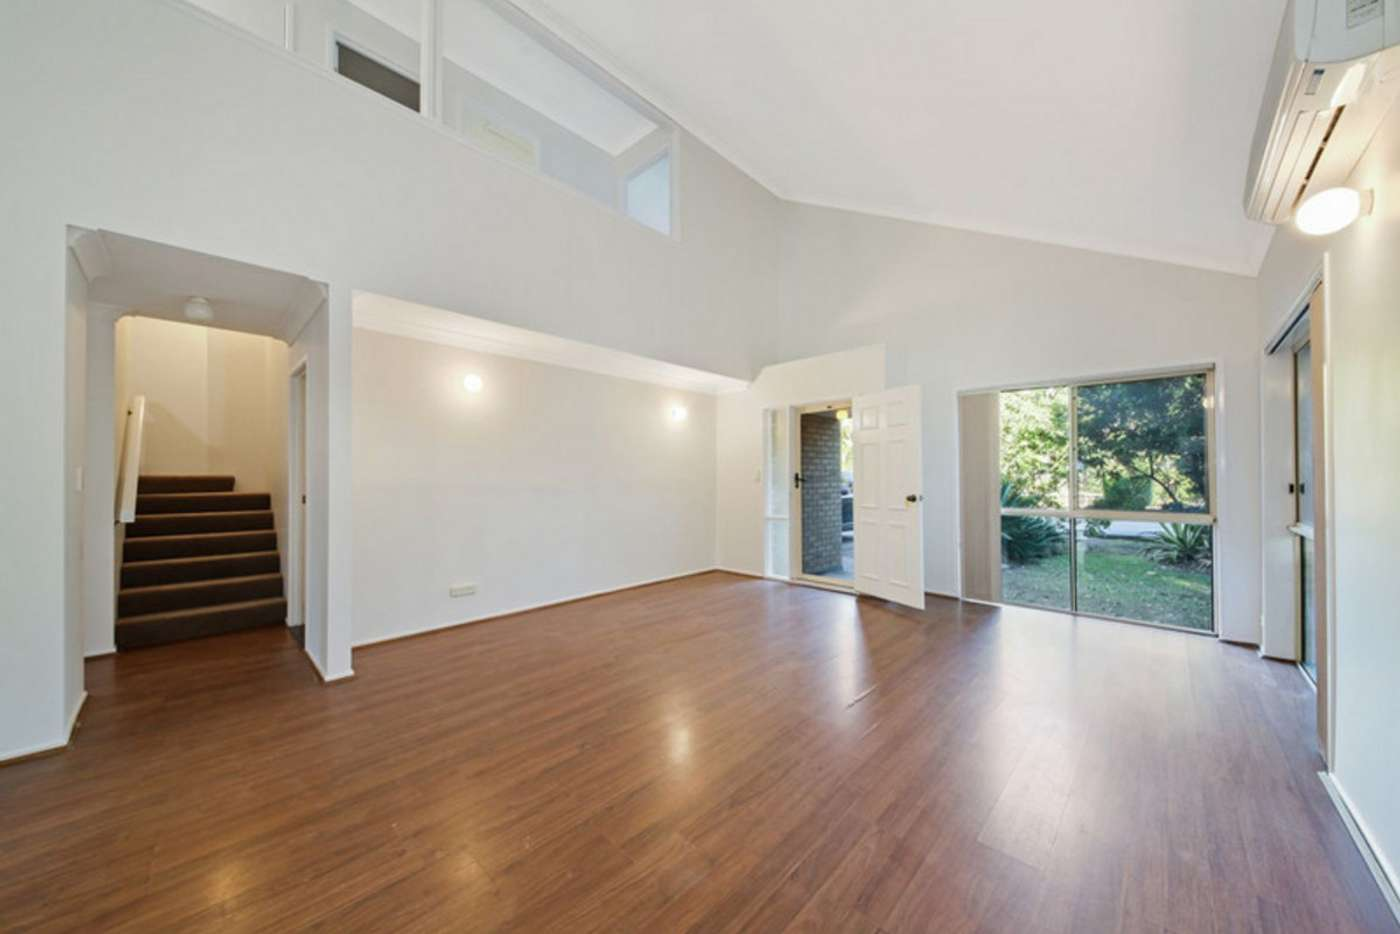 Main view of Homely townhouse listing, 29/27 Fortune Street, Coomera QLD 4209